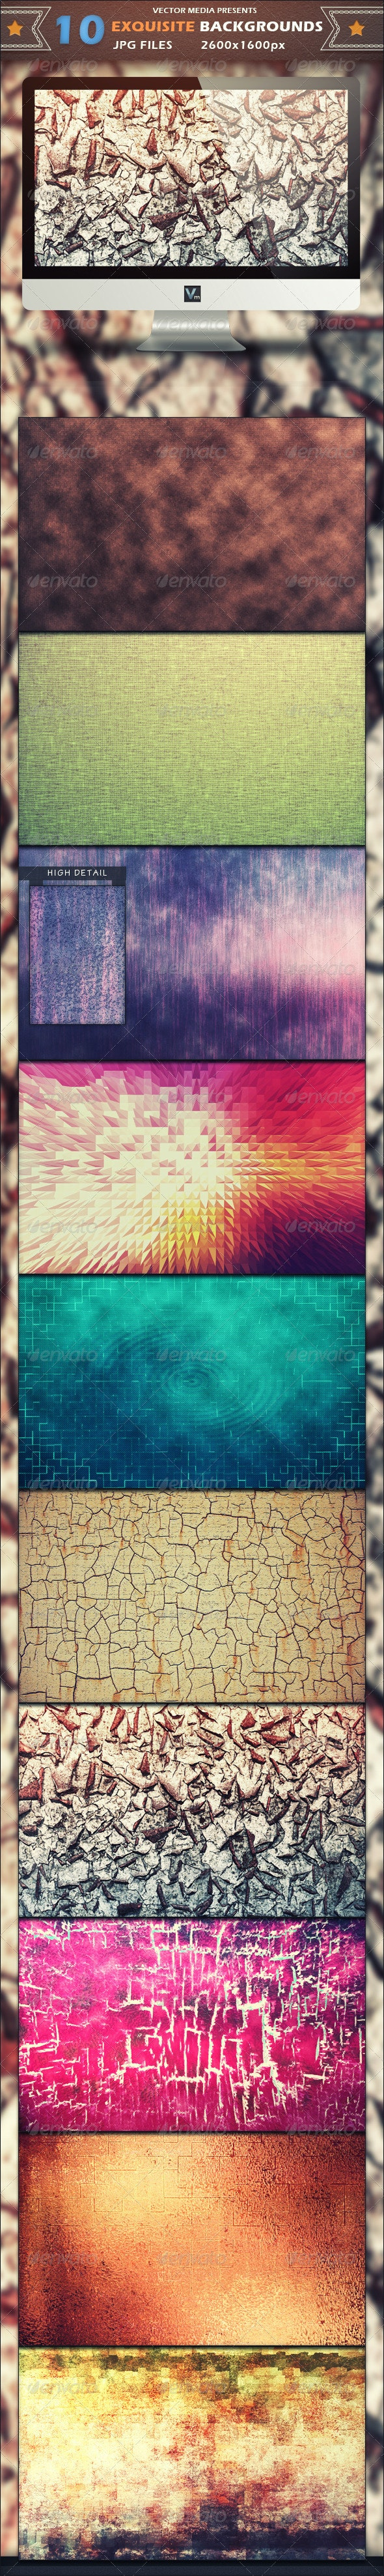 10 Exquisite - Backgrounds - Miscellaneous Backgrounds